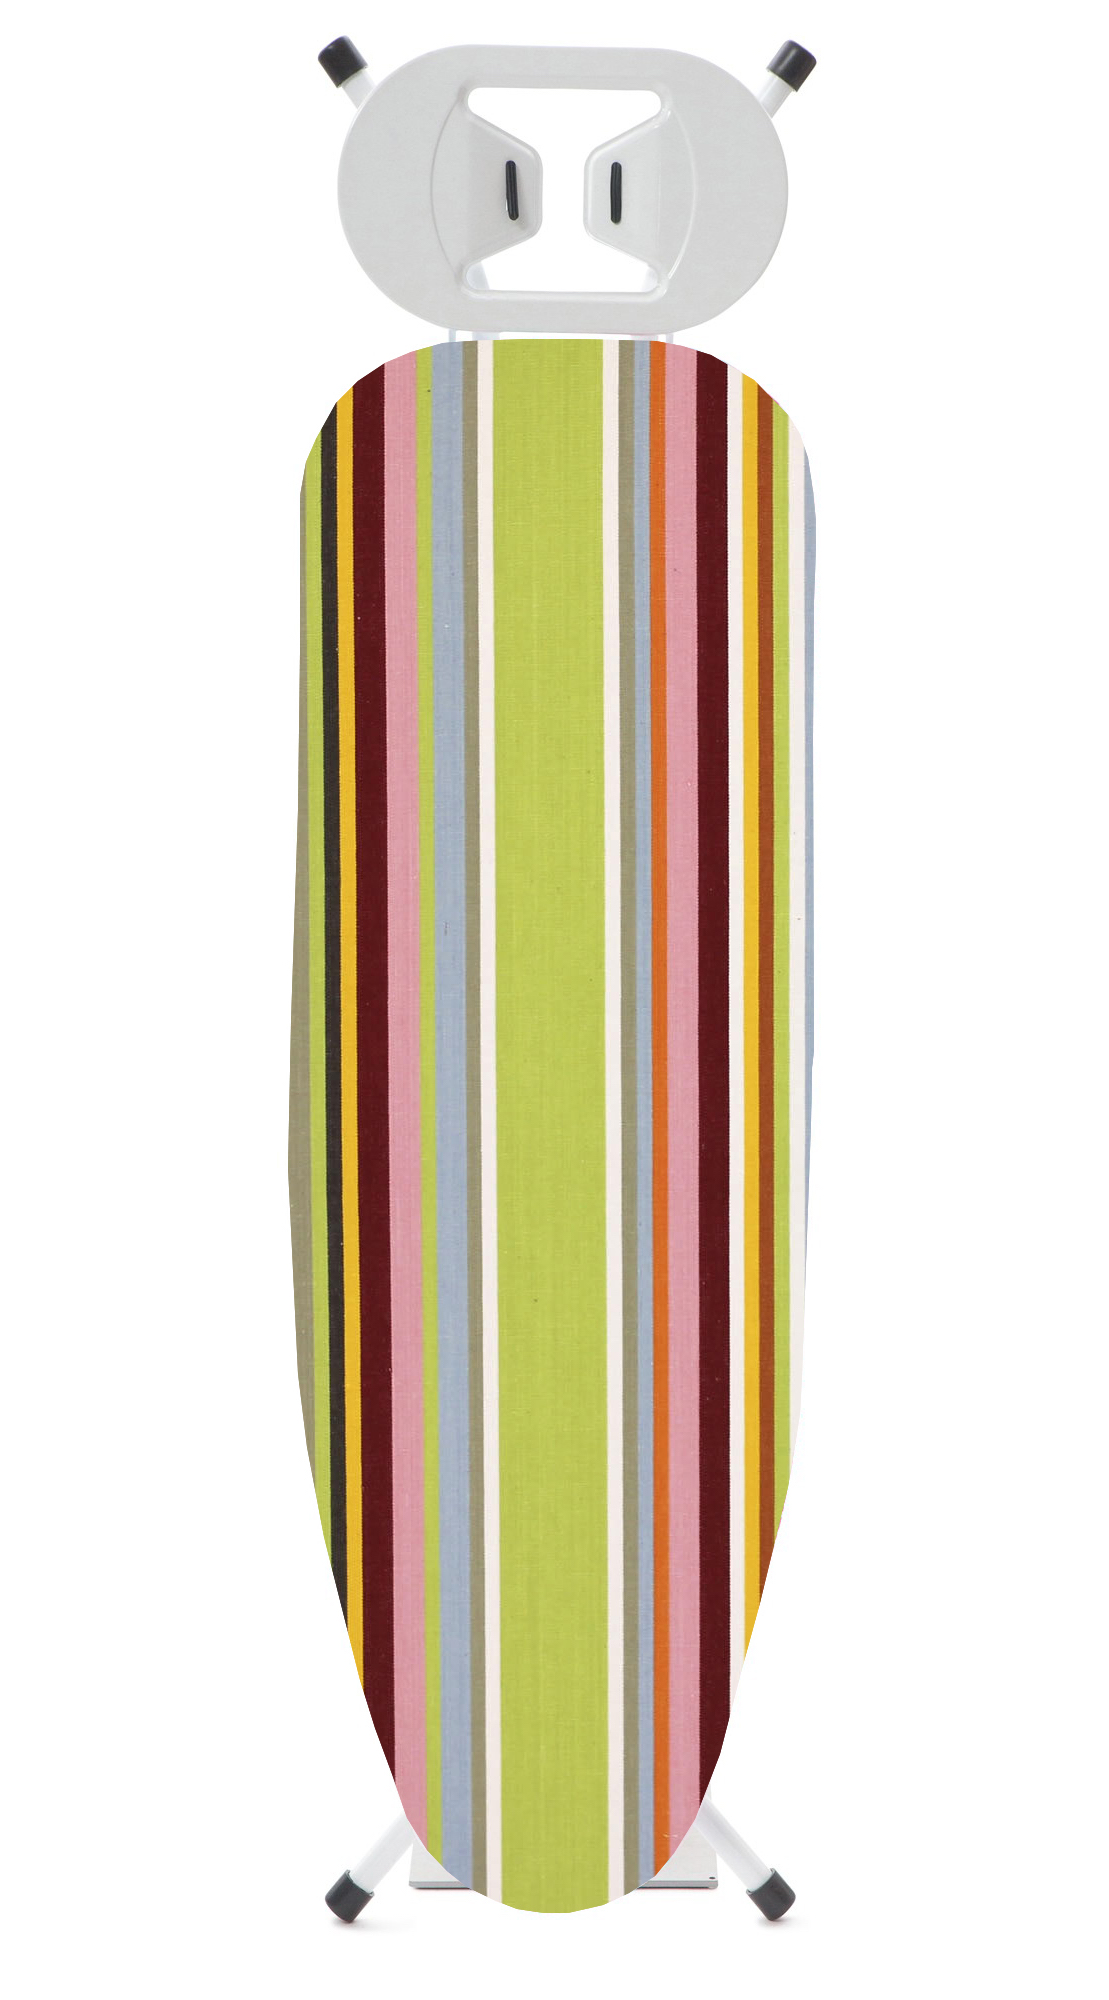 Duck Egg Blue Striped Ironing Board Covers - Cricket Stripes